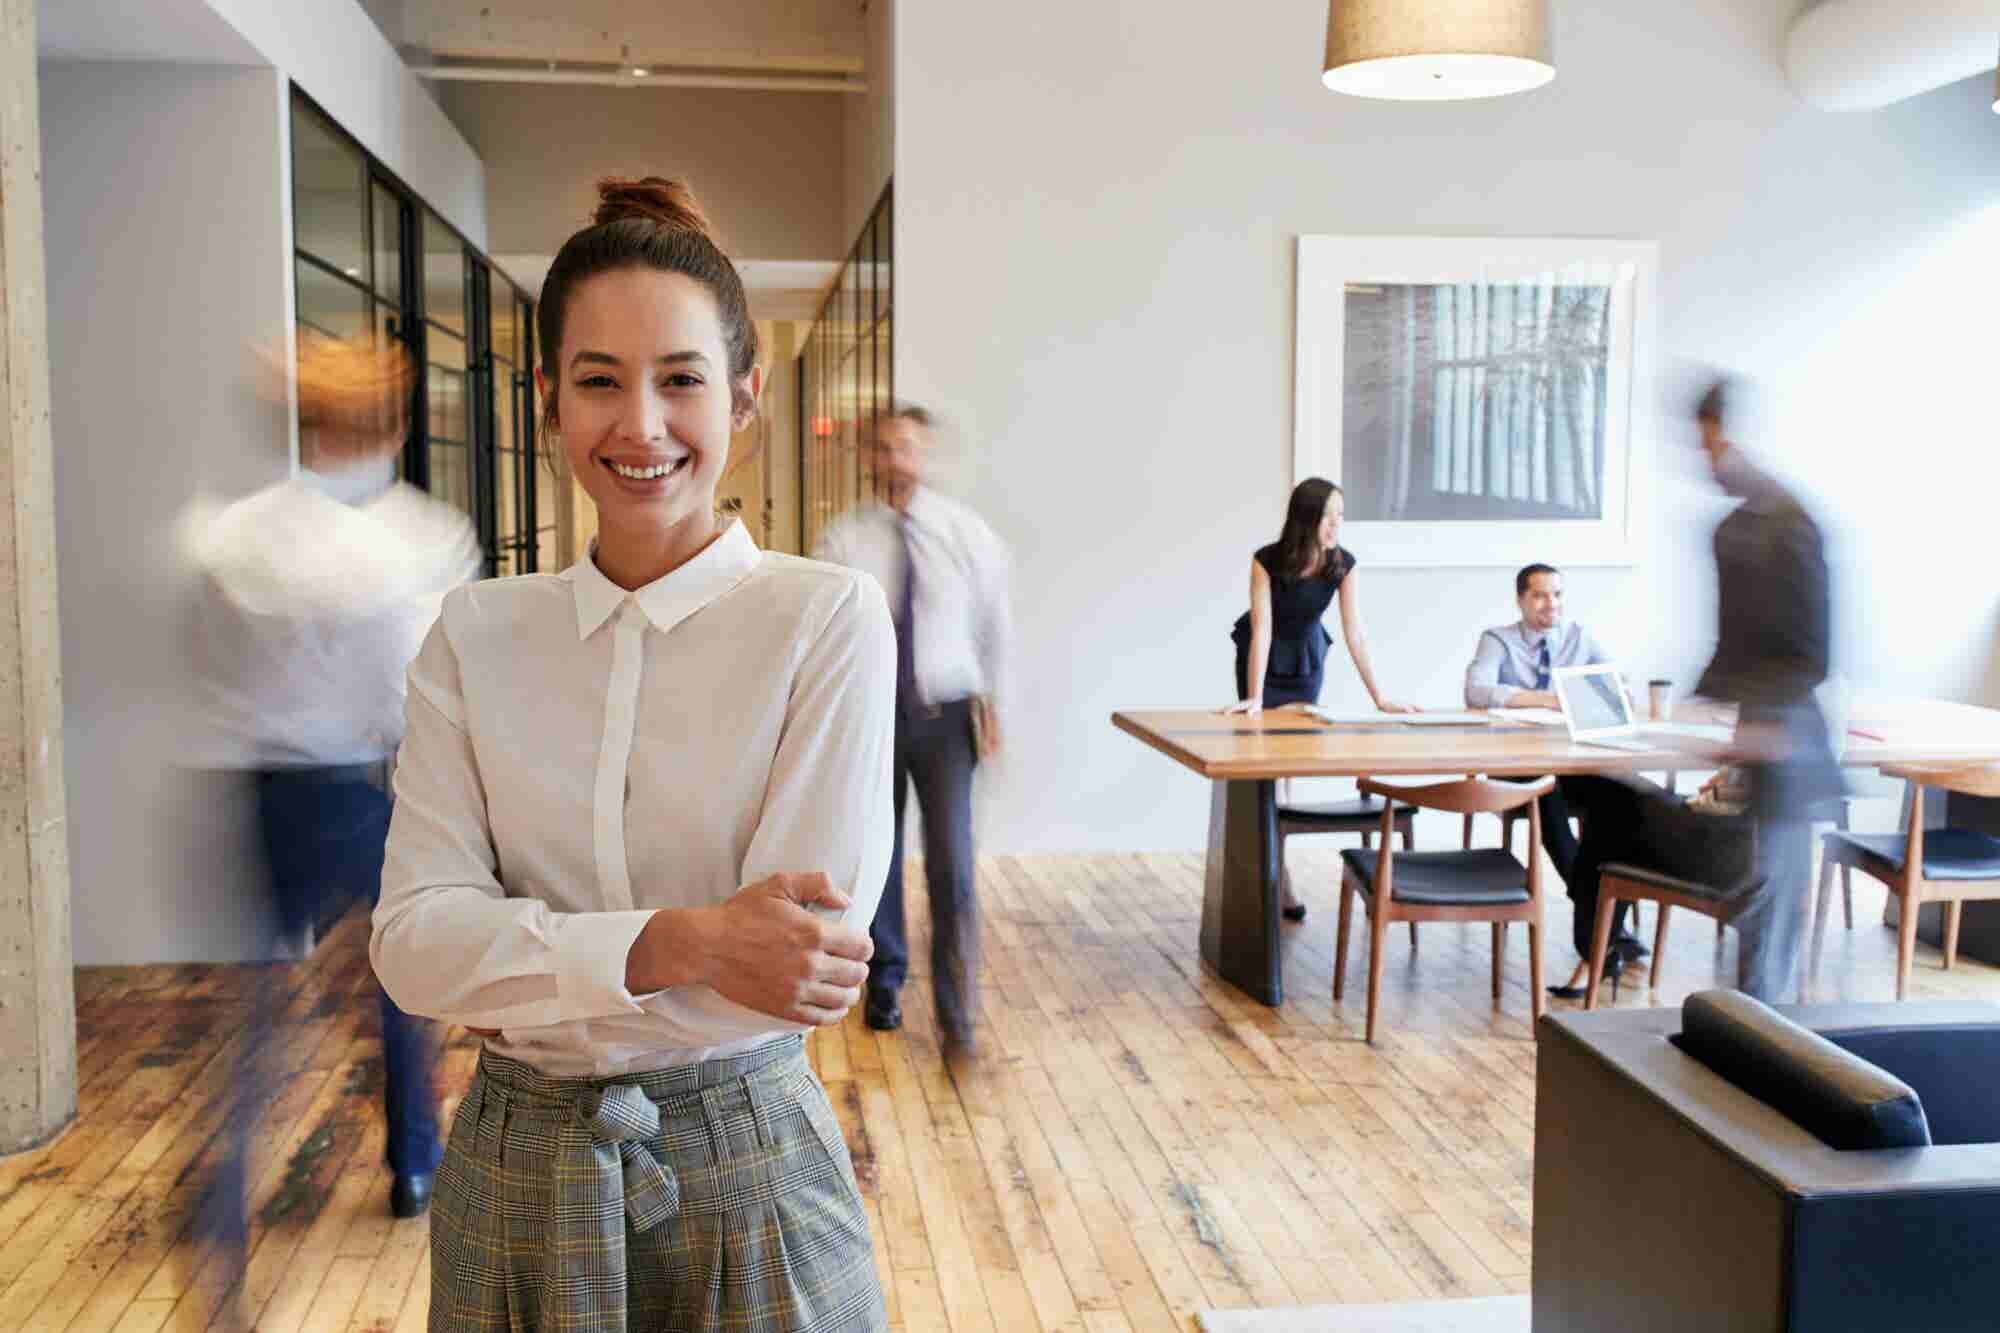 World's Fastest Growing Market of Flexible Office Spaces is Here